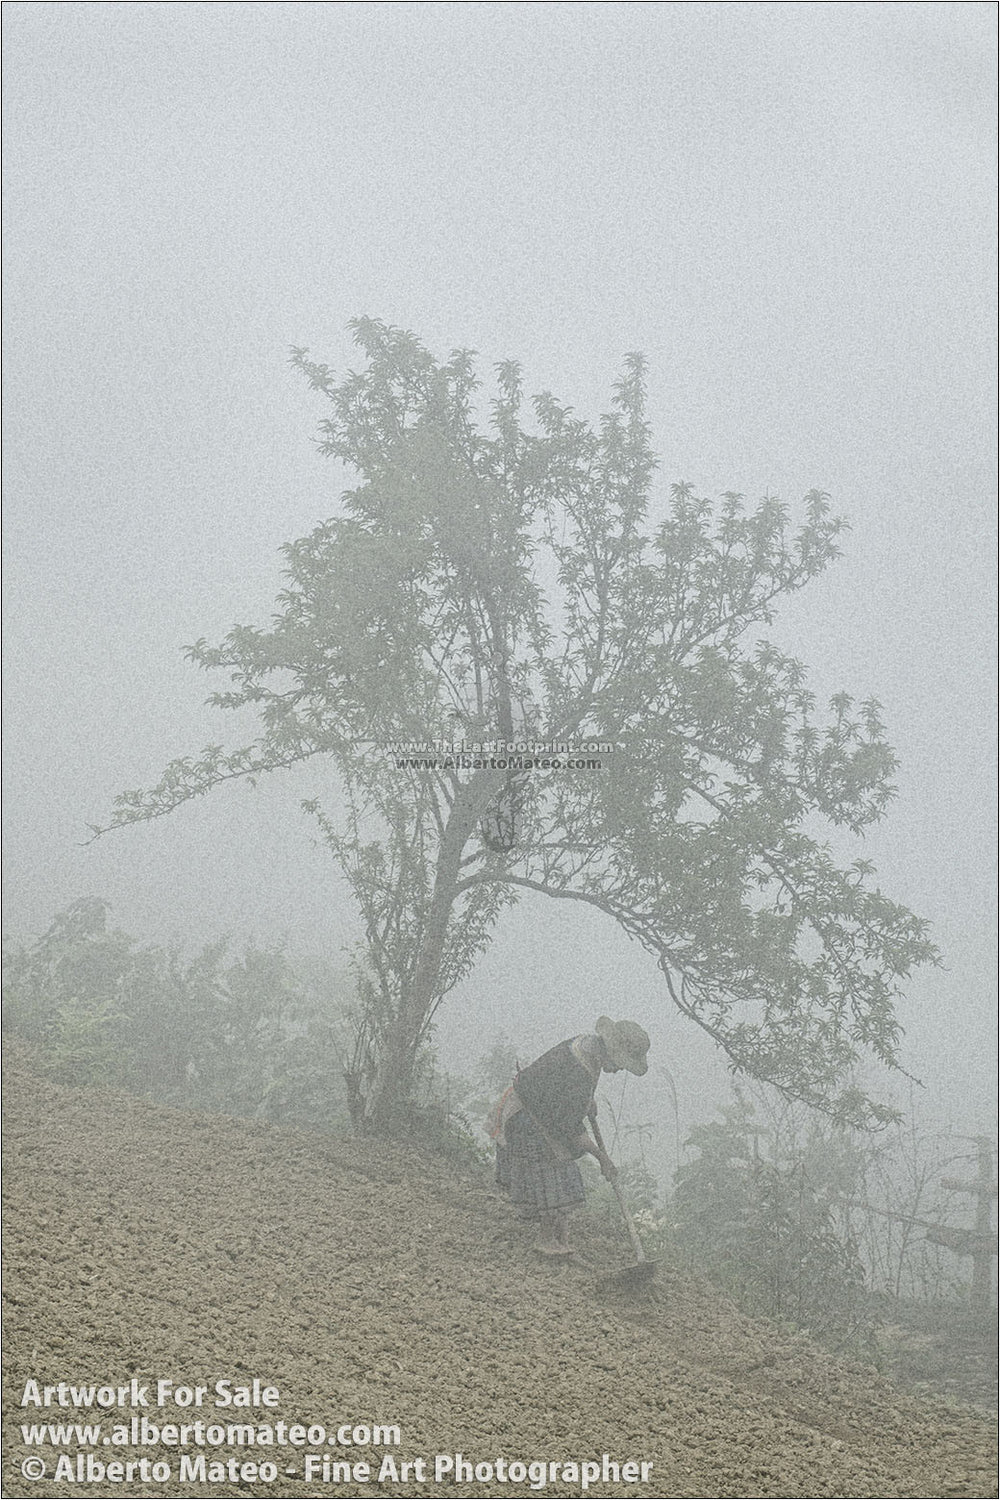 Hmong woman sowing in the fog, Bac Ha, Vietnam. | Open Edition Print.